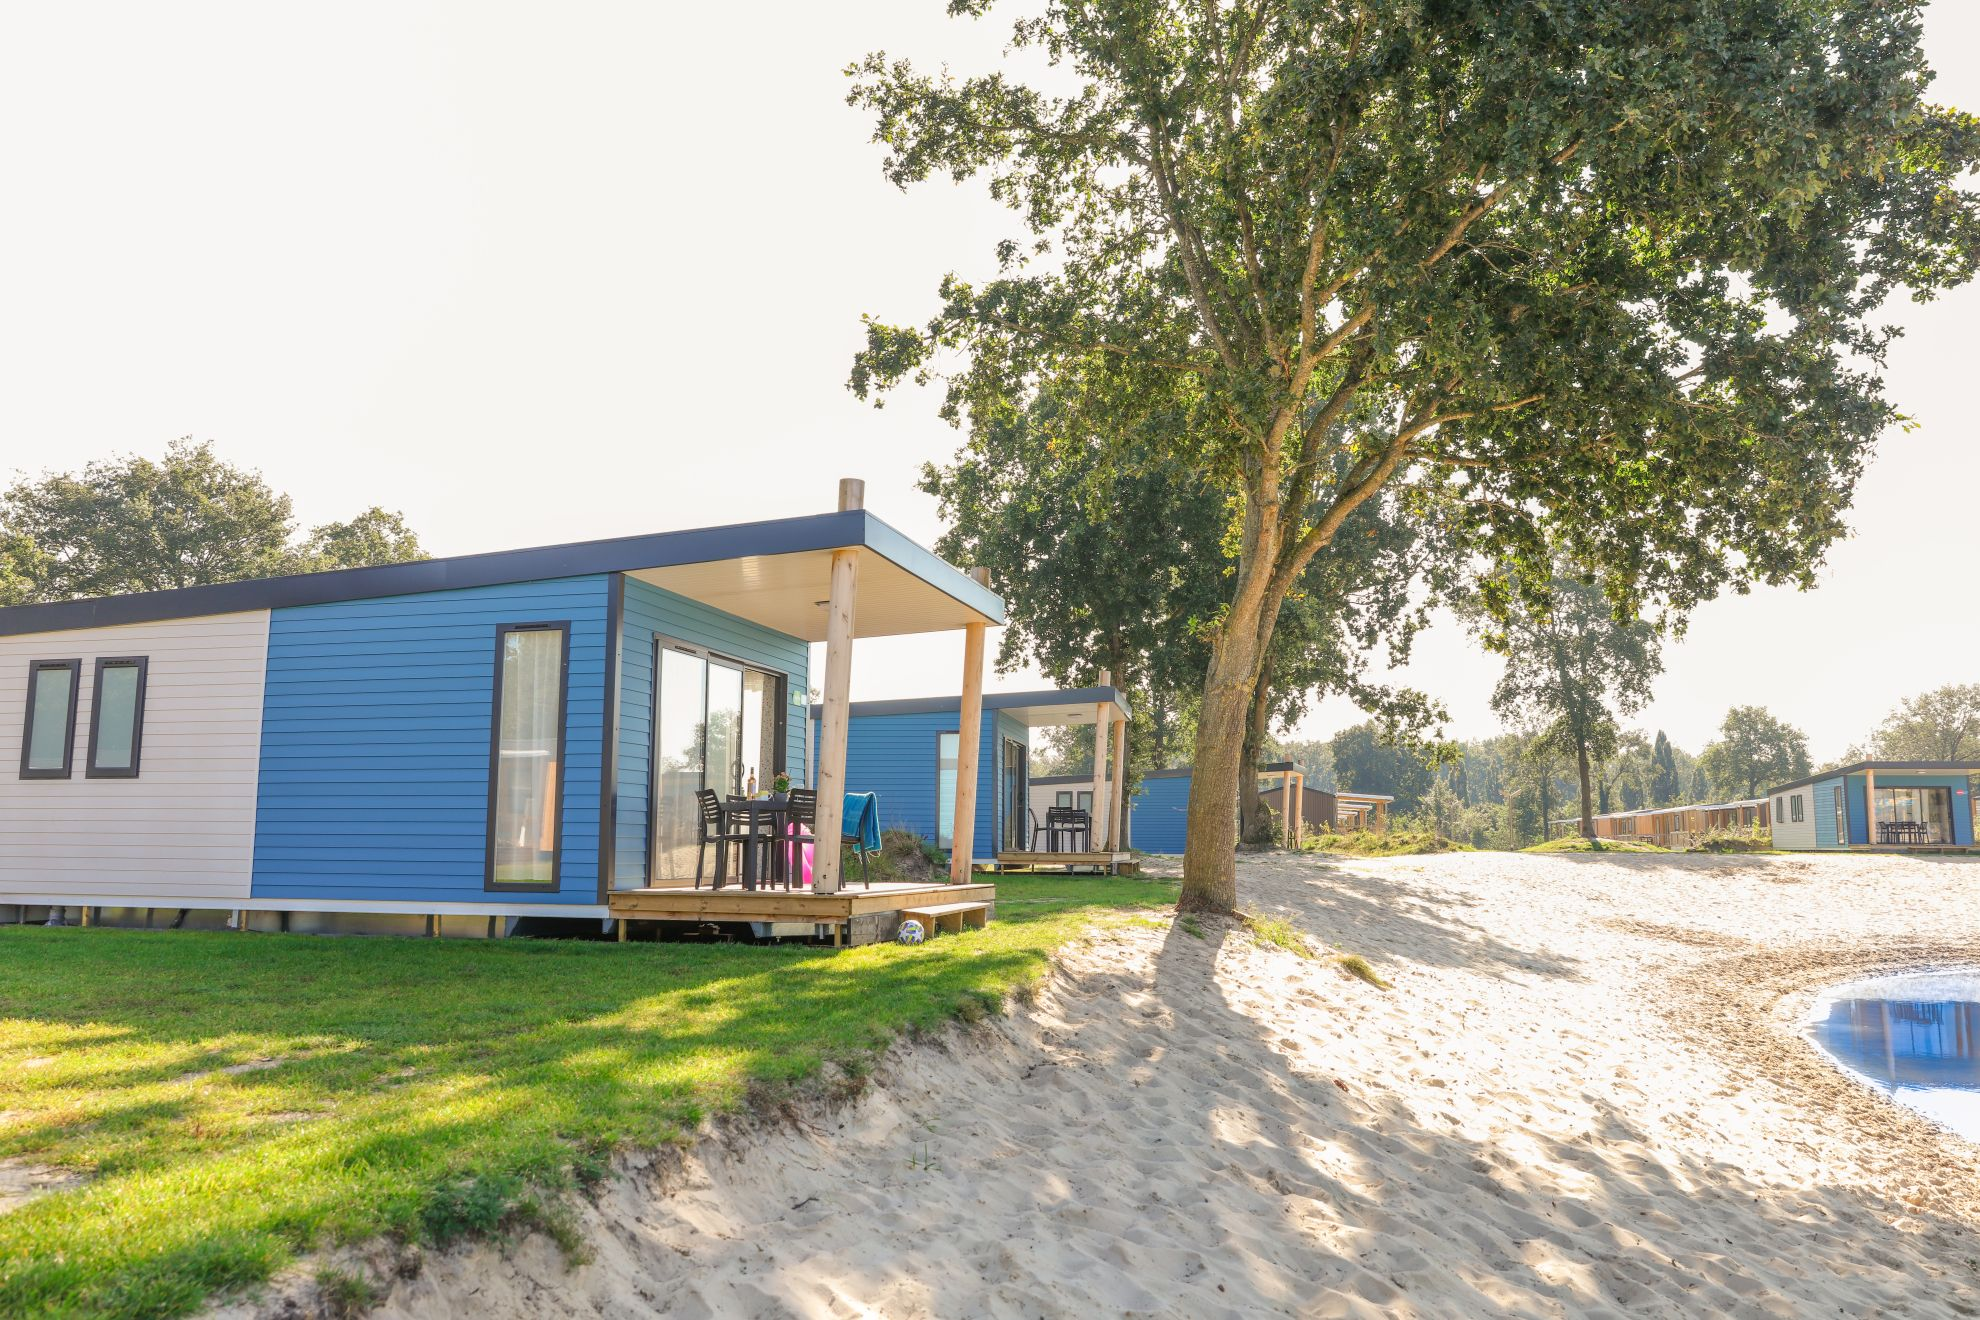 Kim Beach Top TV 4 pers. - Chalet Kim - strandvakantie in Overijssel